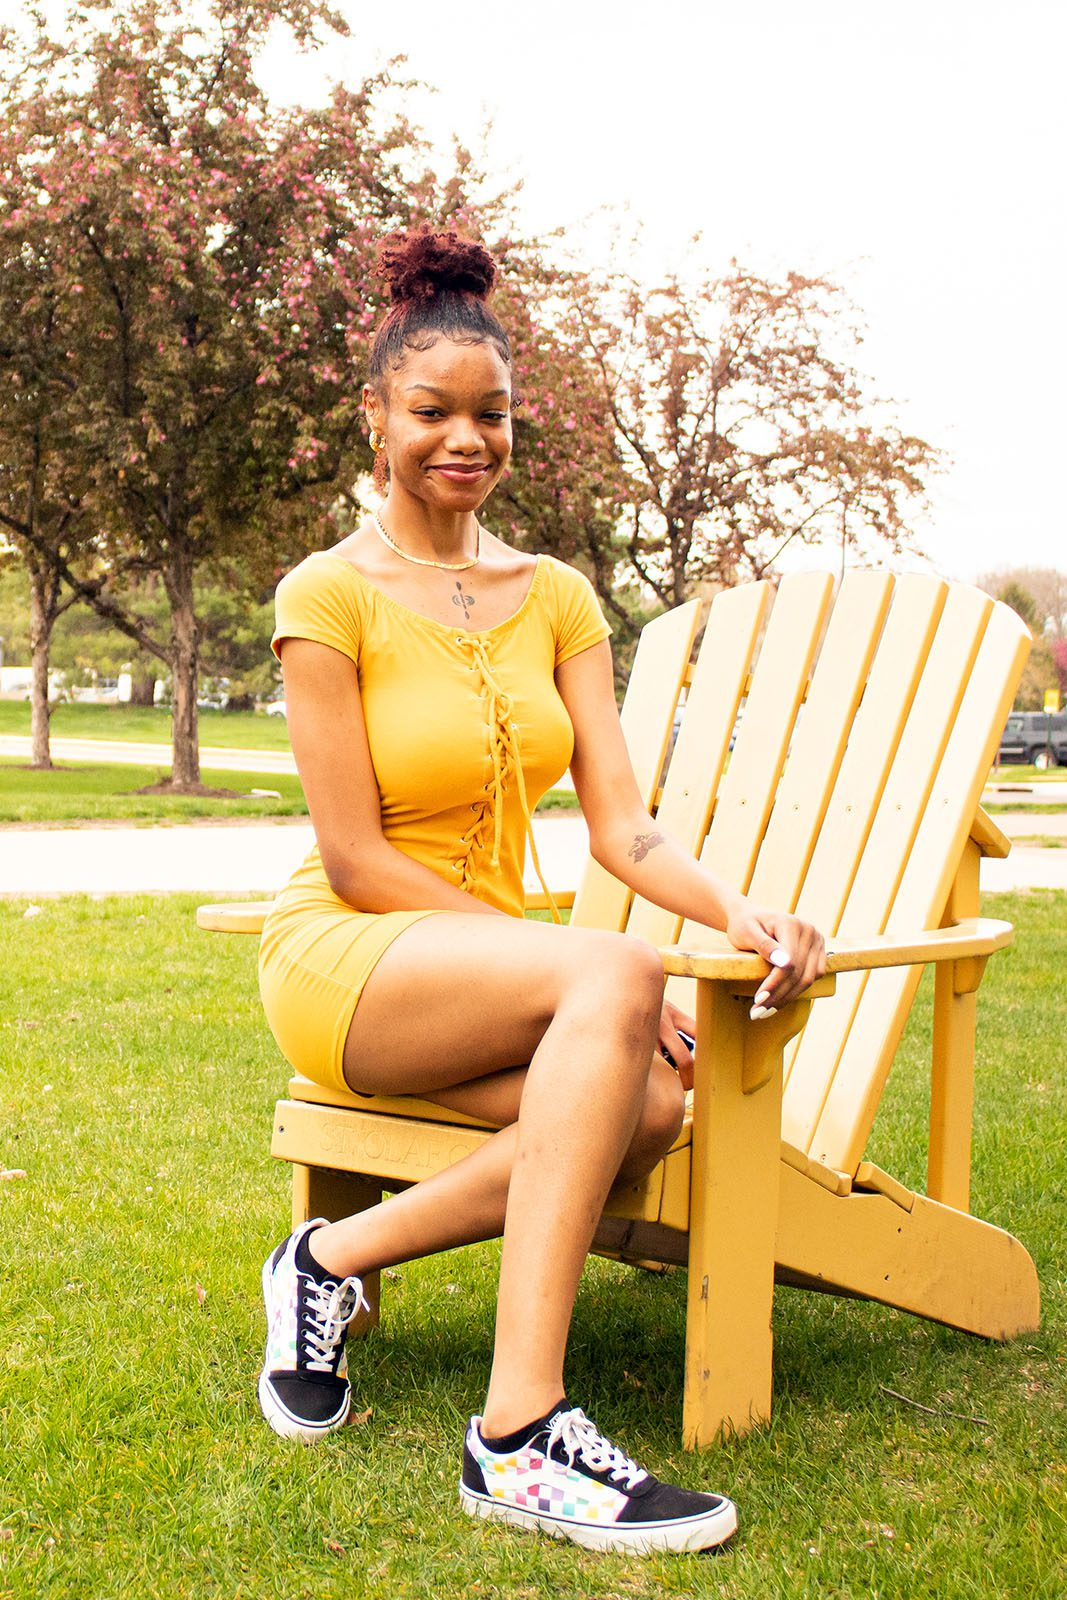 Portrait of Tija Atkins on a yellow adirondack chair with trees in the background.